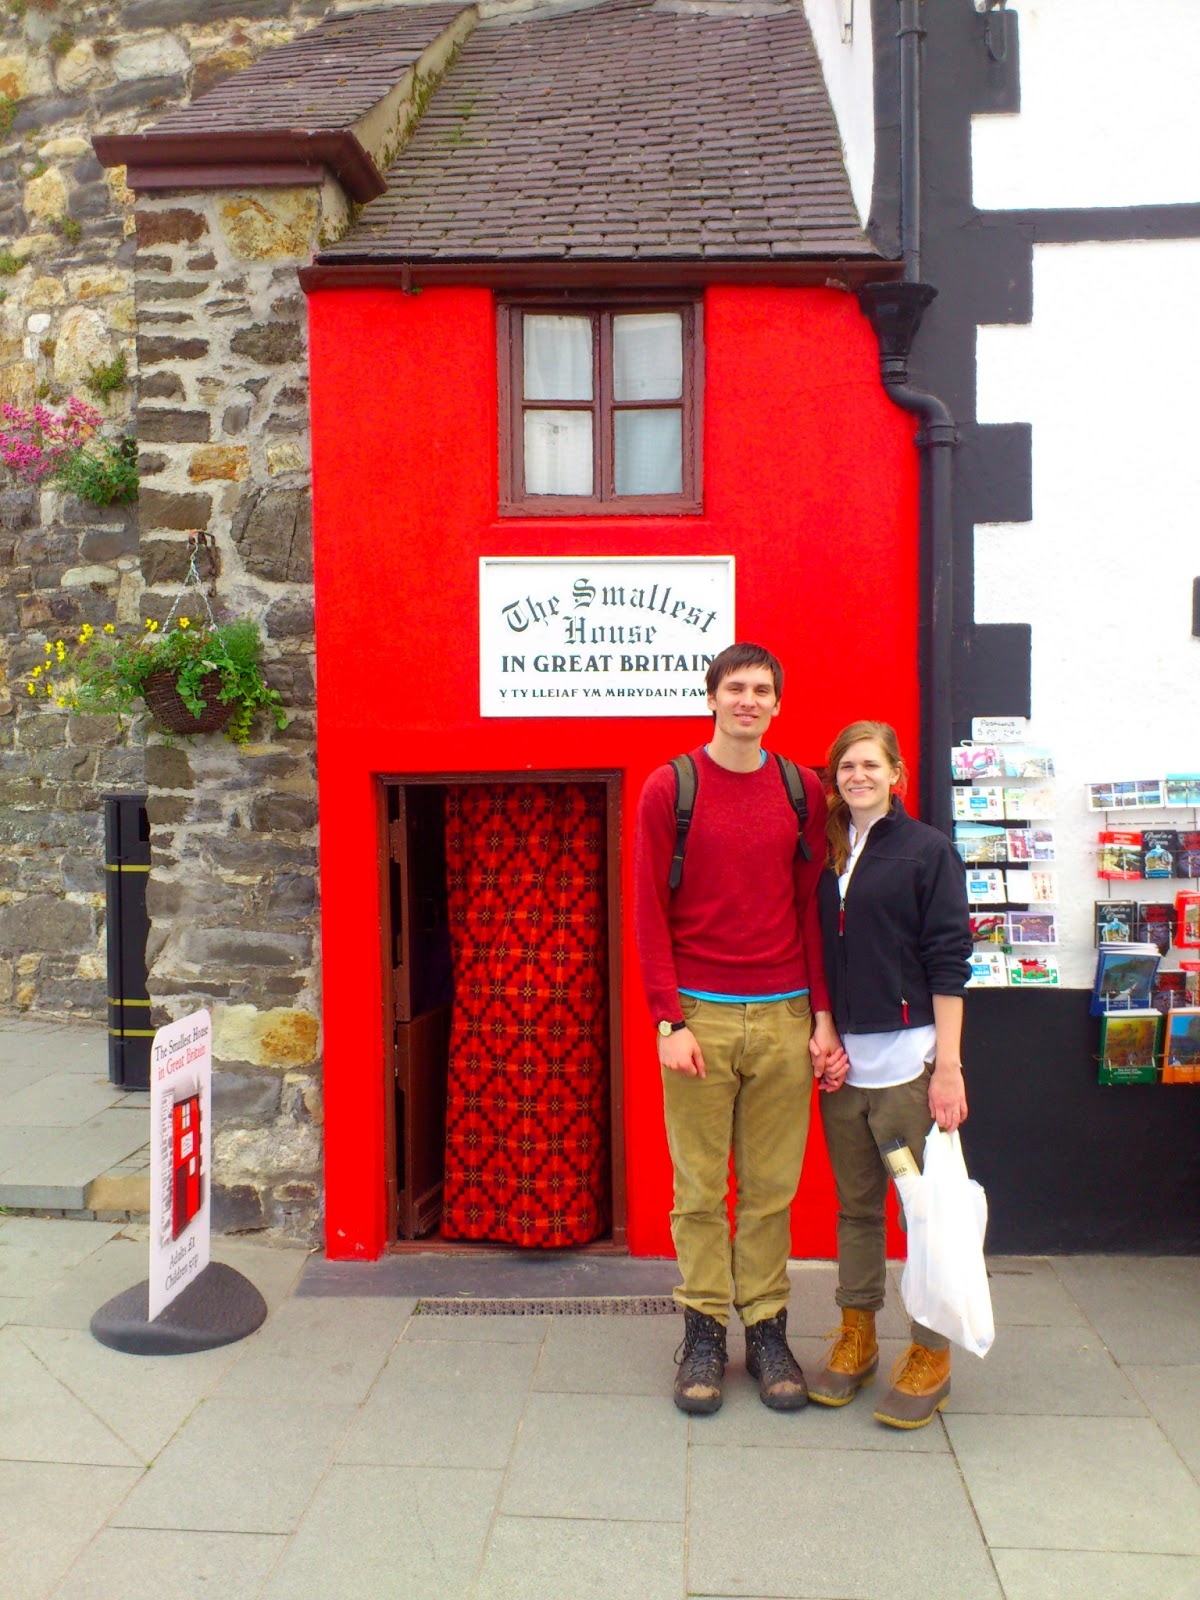 Peregrinations of njm conwy the smallest house in britain for The smallest house